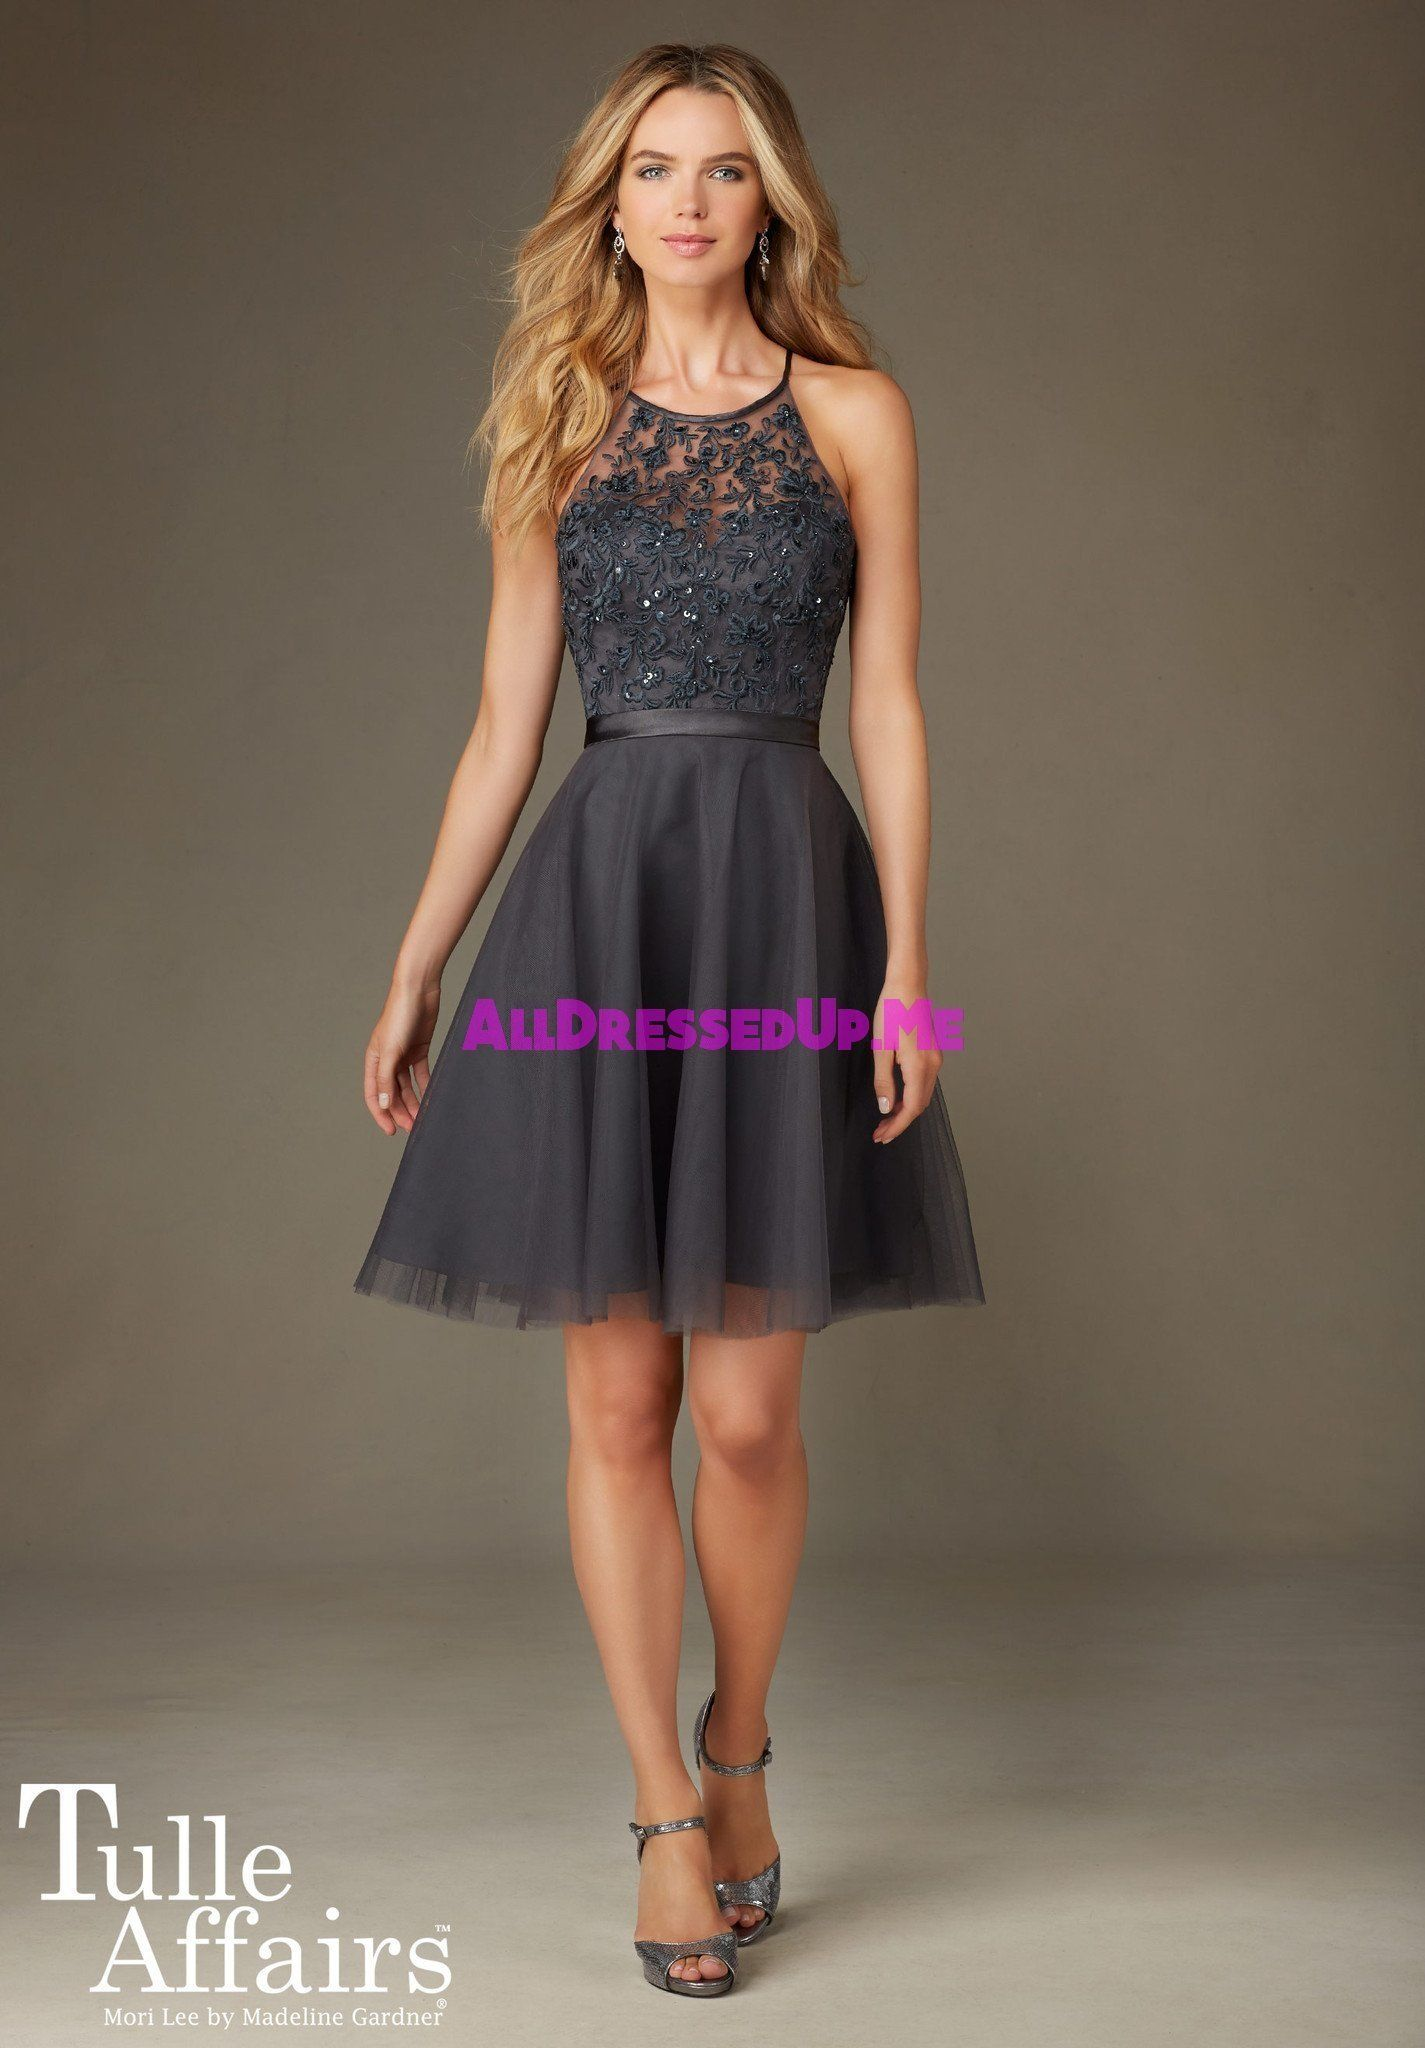 Tulle Affairs - 135 - All Dressed Up 01640d81663b